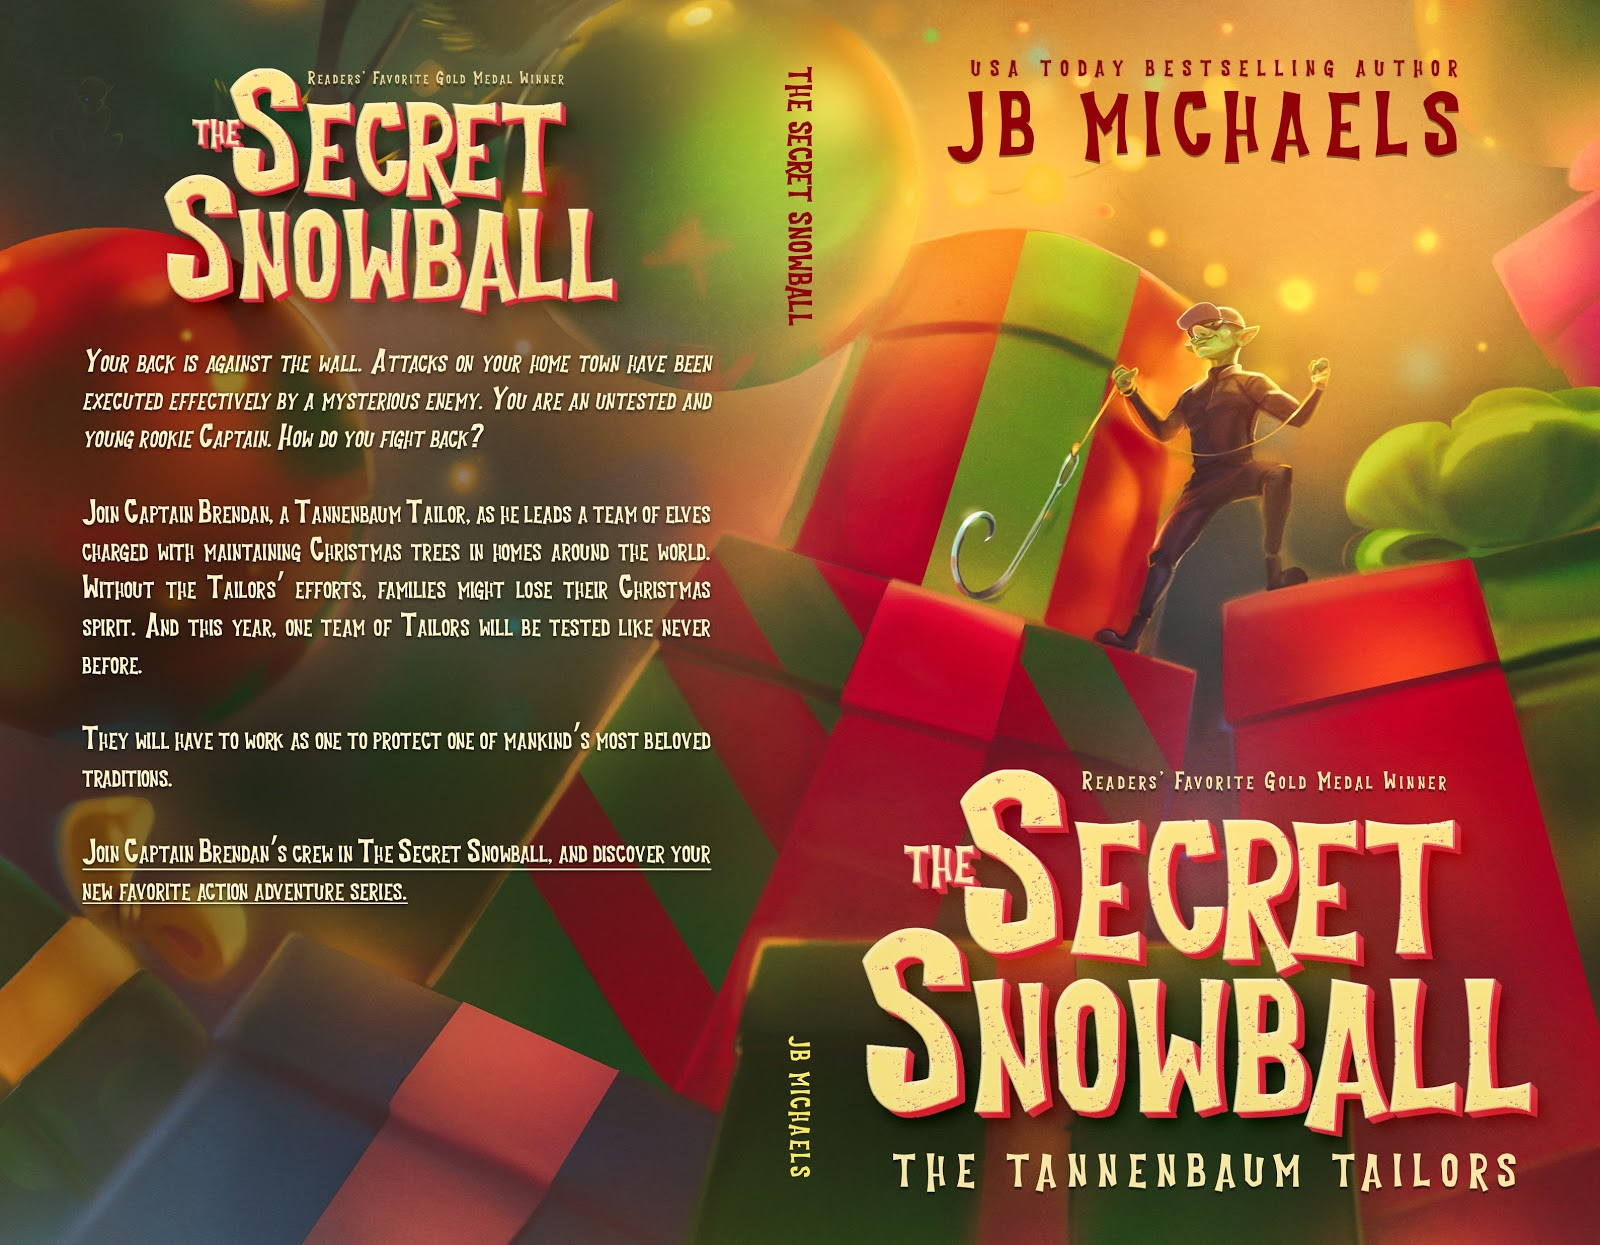 The Secret Snowball as an example of children's book cover design  with great color use